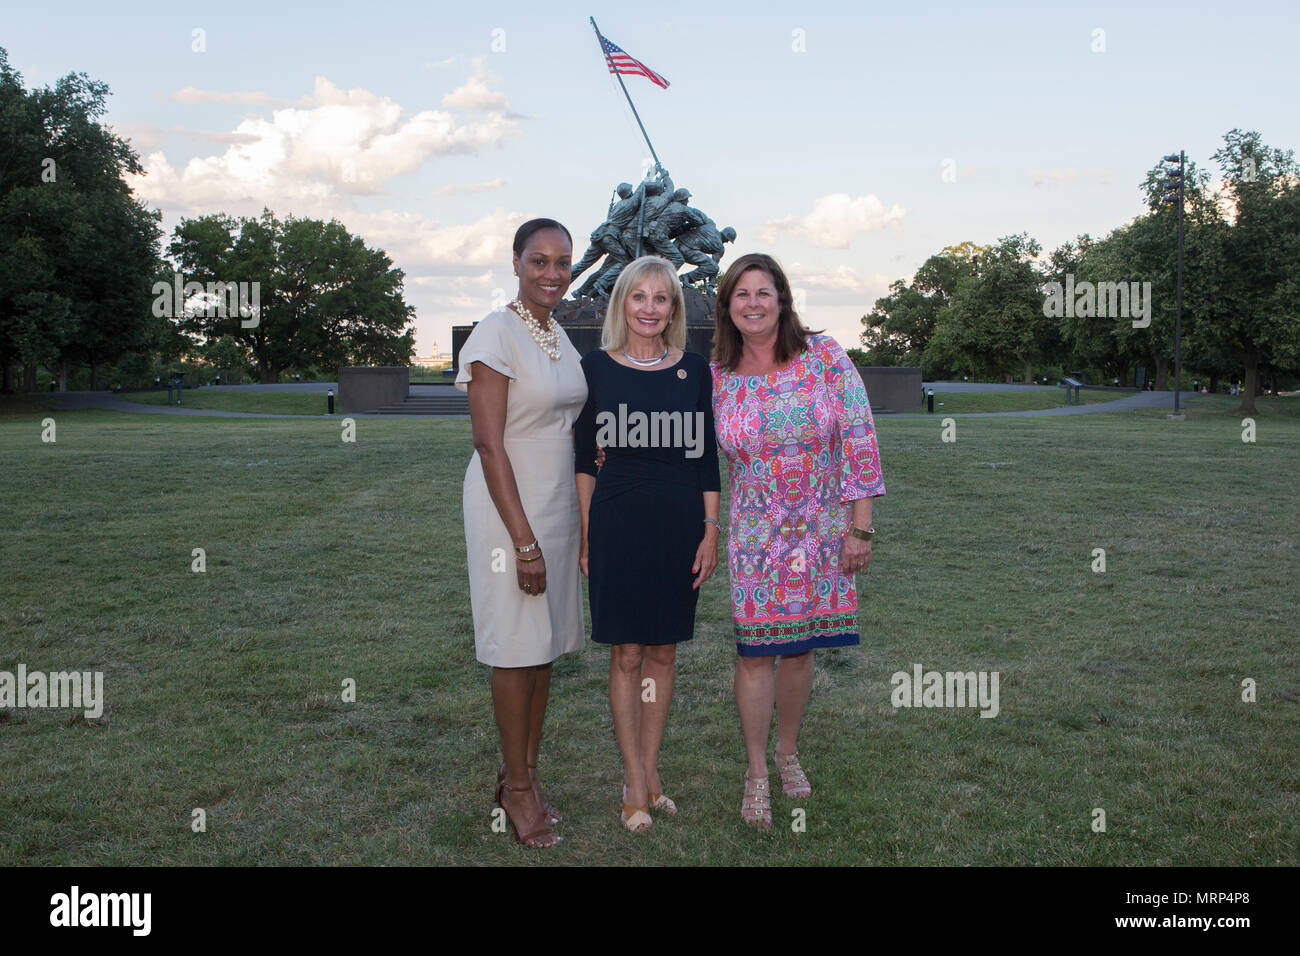 From left, Ladonna Crenshaw, Bonnie Perdue and Suzanne Dana pose for during a sunset parade at the Marine Corps War Memorial, Arlington, Va., June 27, 2017. Sunset parades are held as a means of honoring senior officials, distinguished citizens and supporters of the Marine Corps. (U.S. Marine Corps photo by Cpl. Christian Varney) - Stock Image